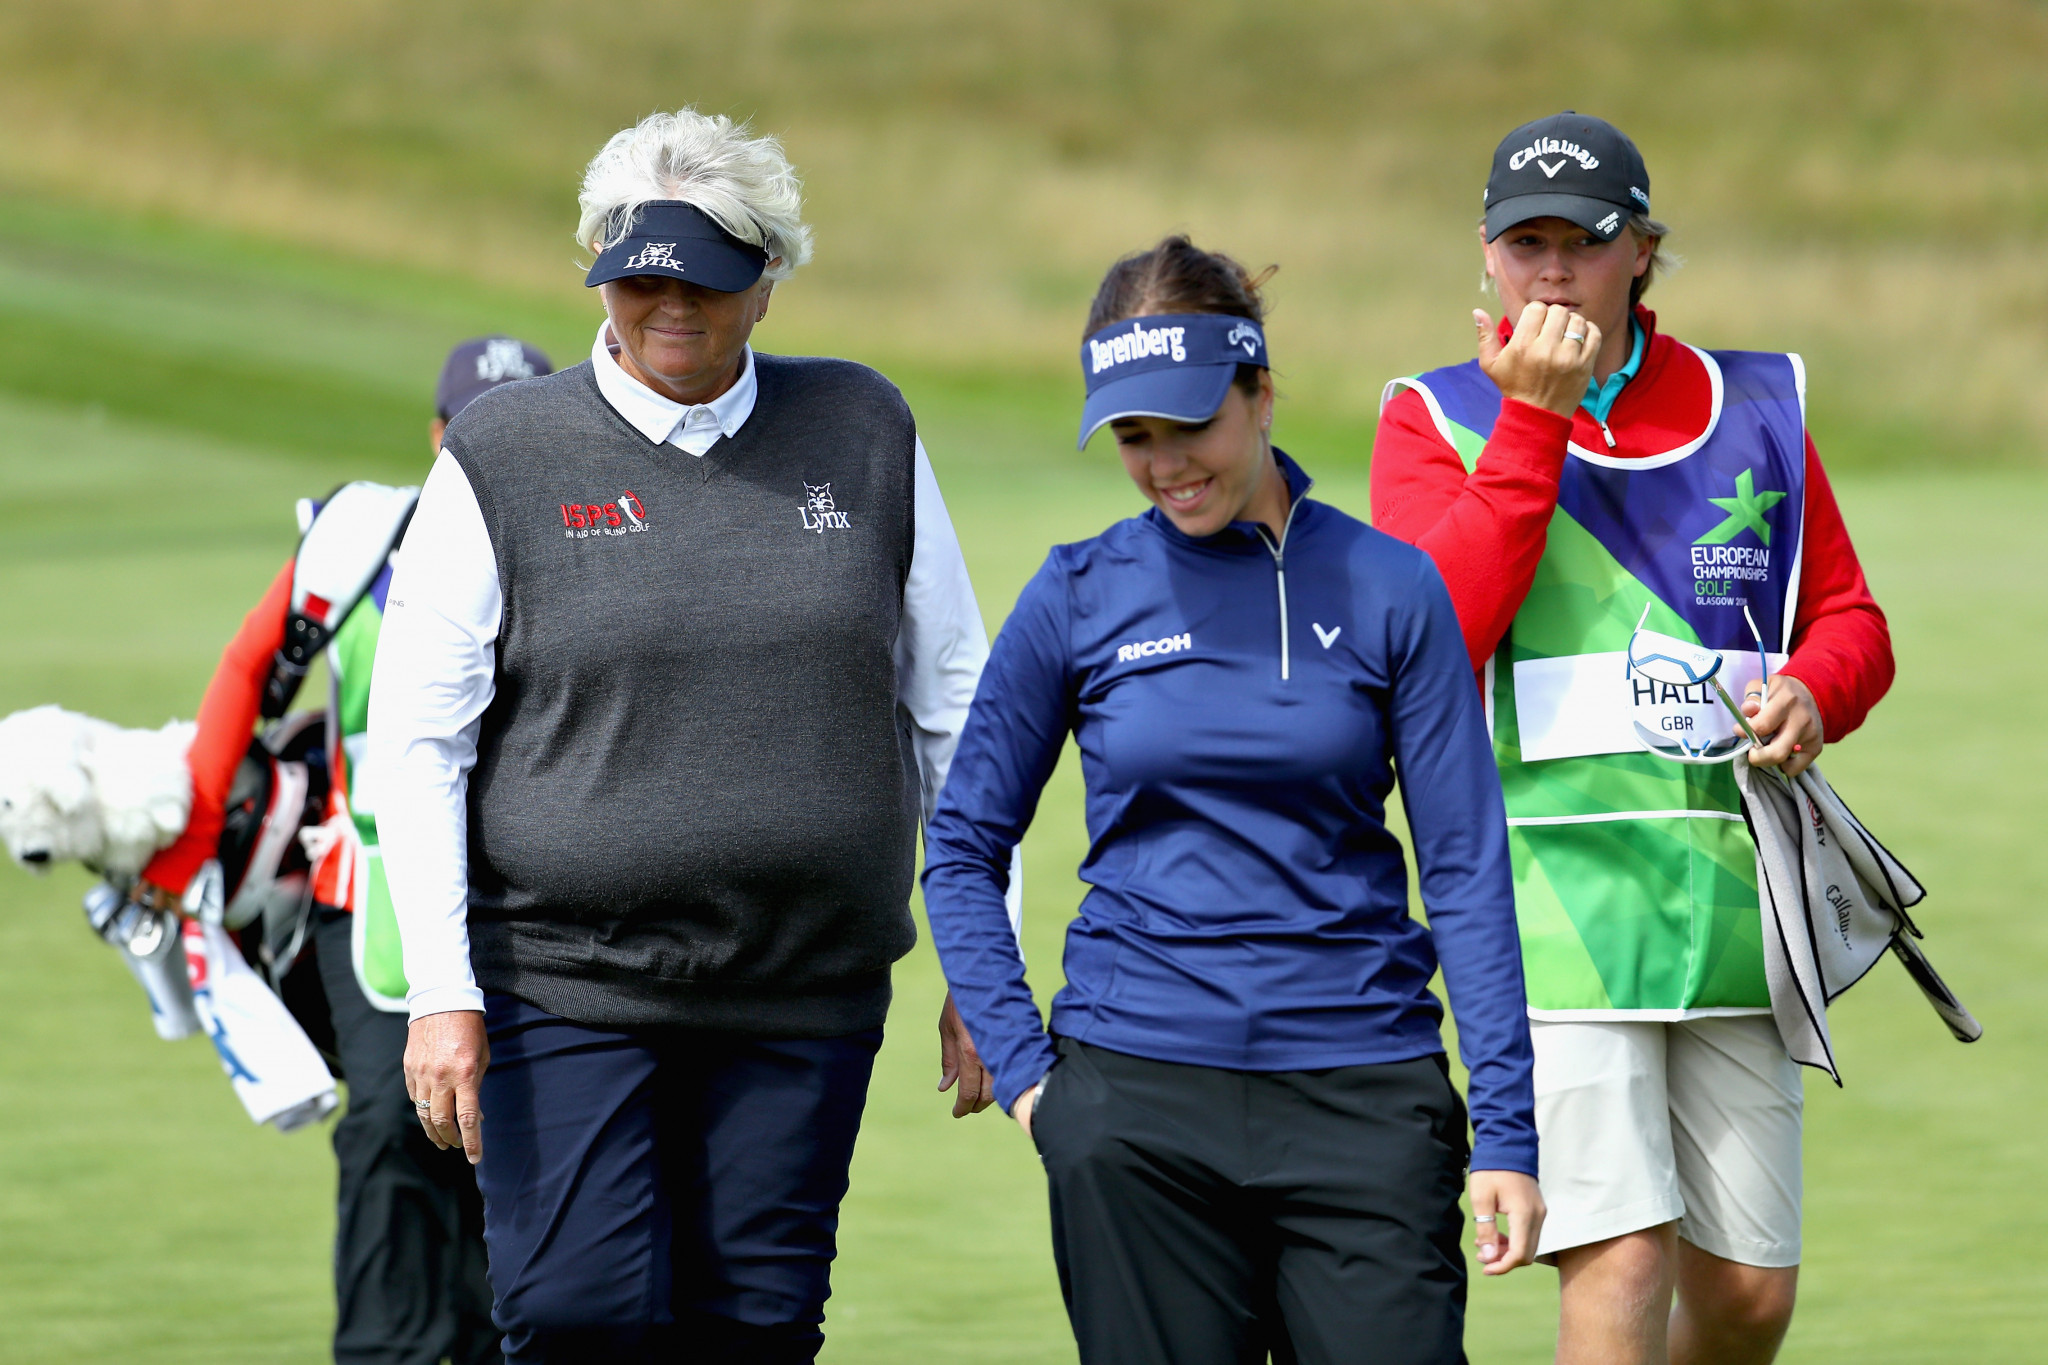 Georgia Hall and Laura Davies are among three British pairs in pole position to make the semi-finals after day two of the European Golf Team Championships at Gleneagles ©Getty Images